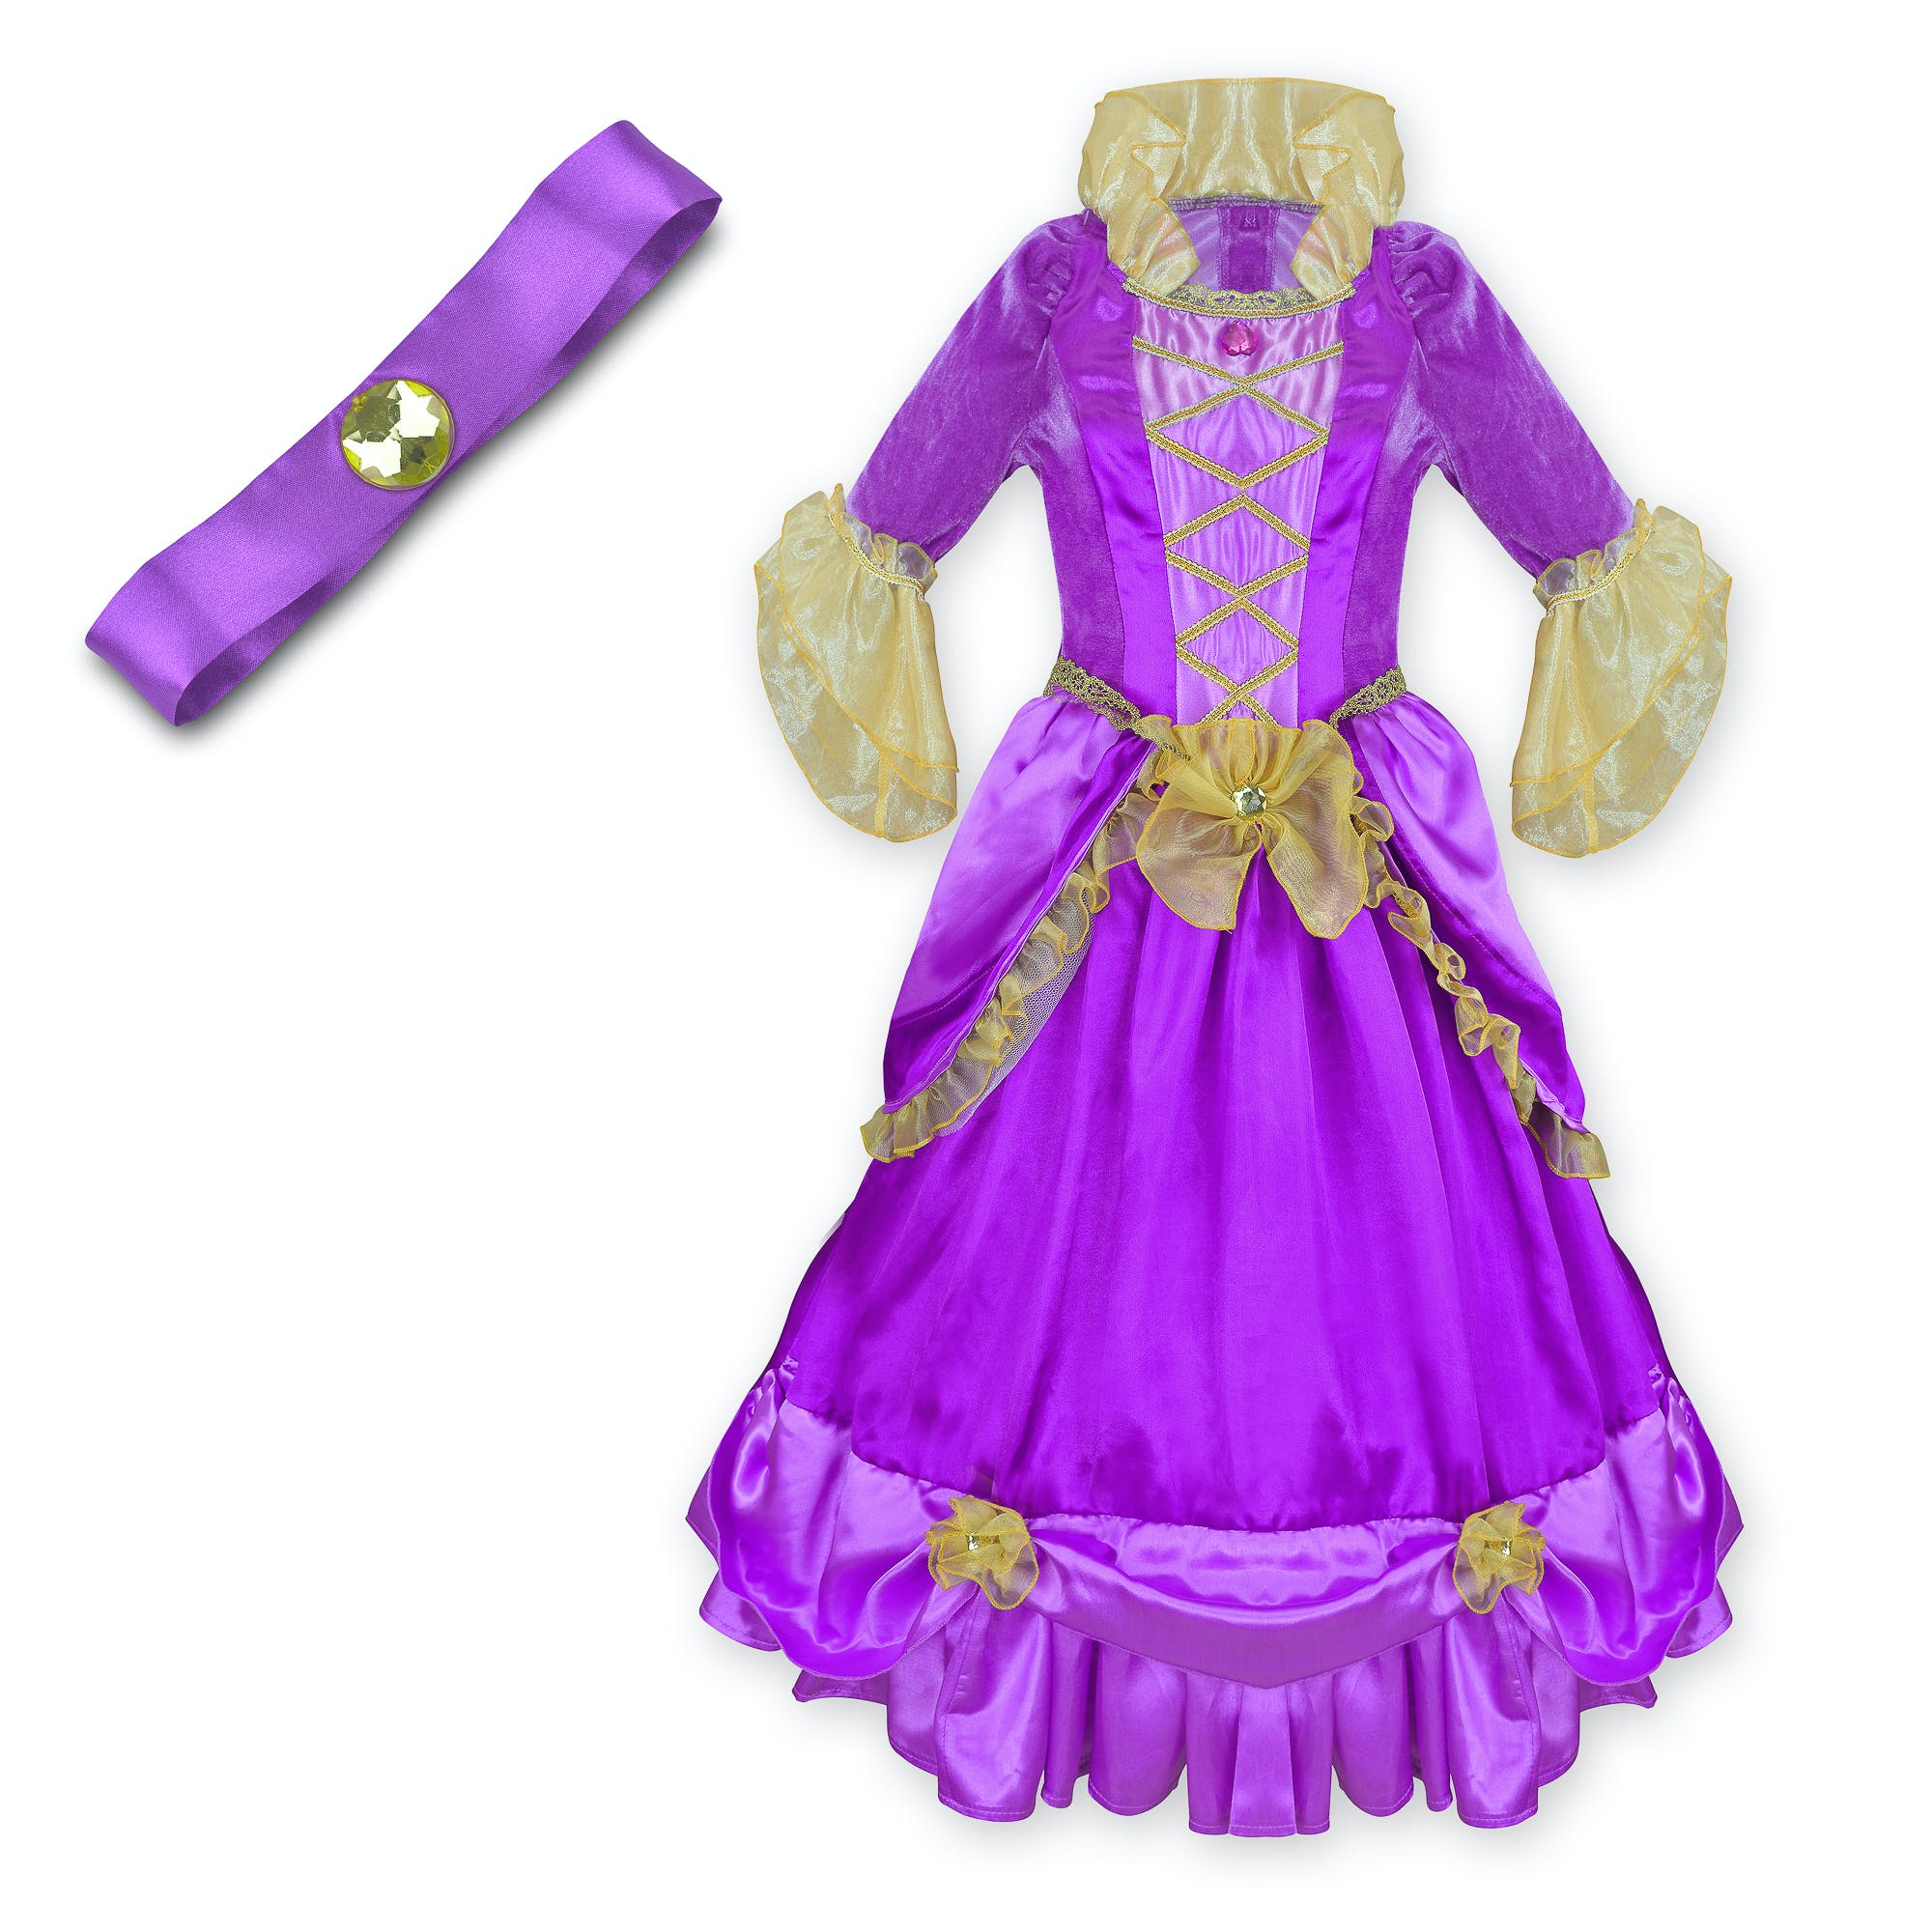 The perfect dress up, your little princess can glide around like a Georgian Princess with this pretty princess fancy dress.